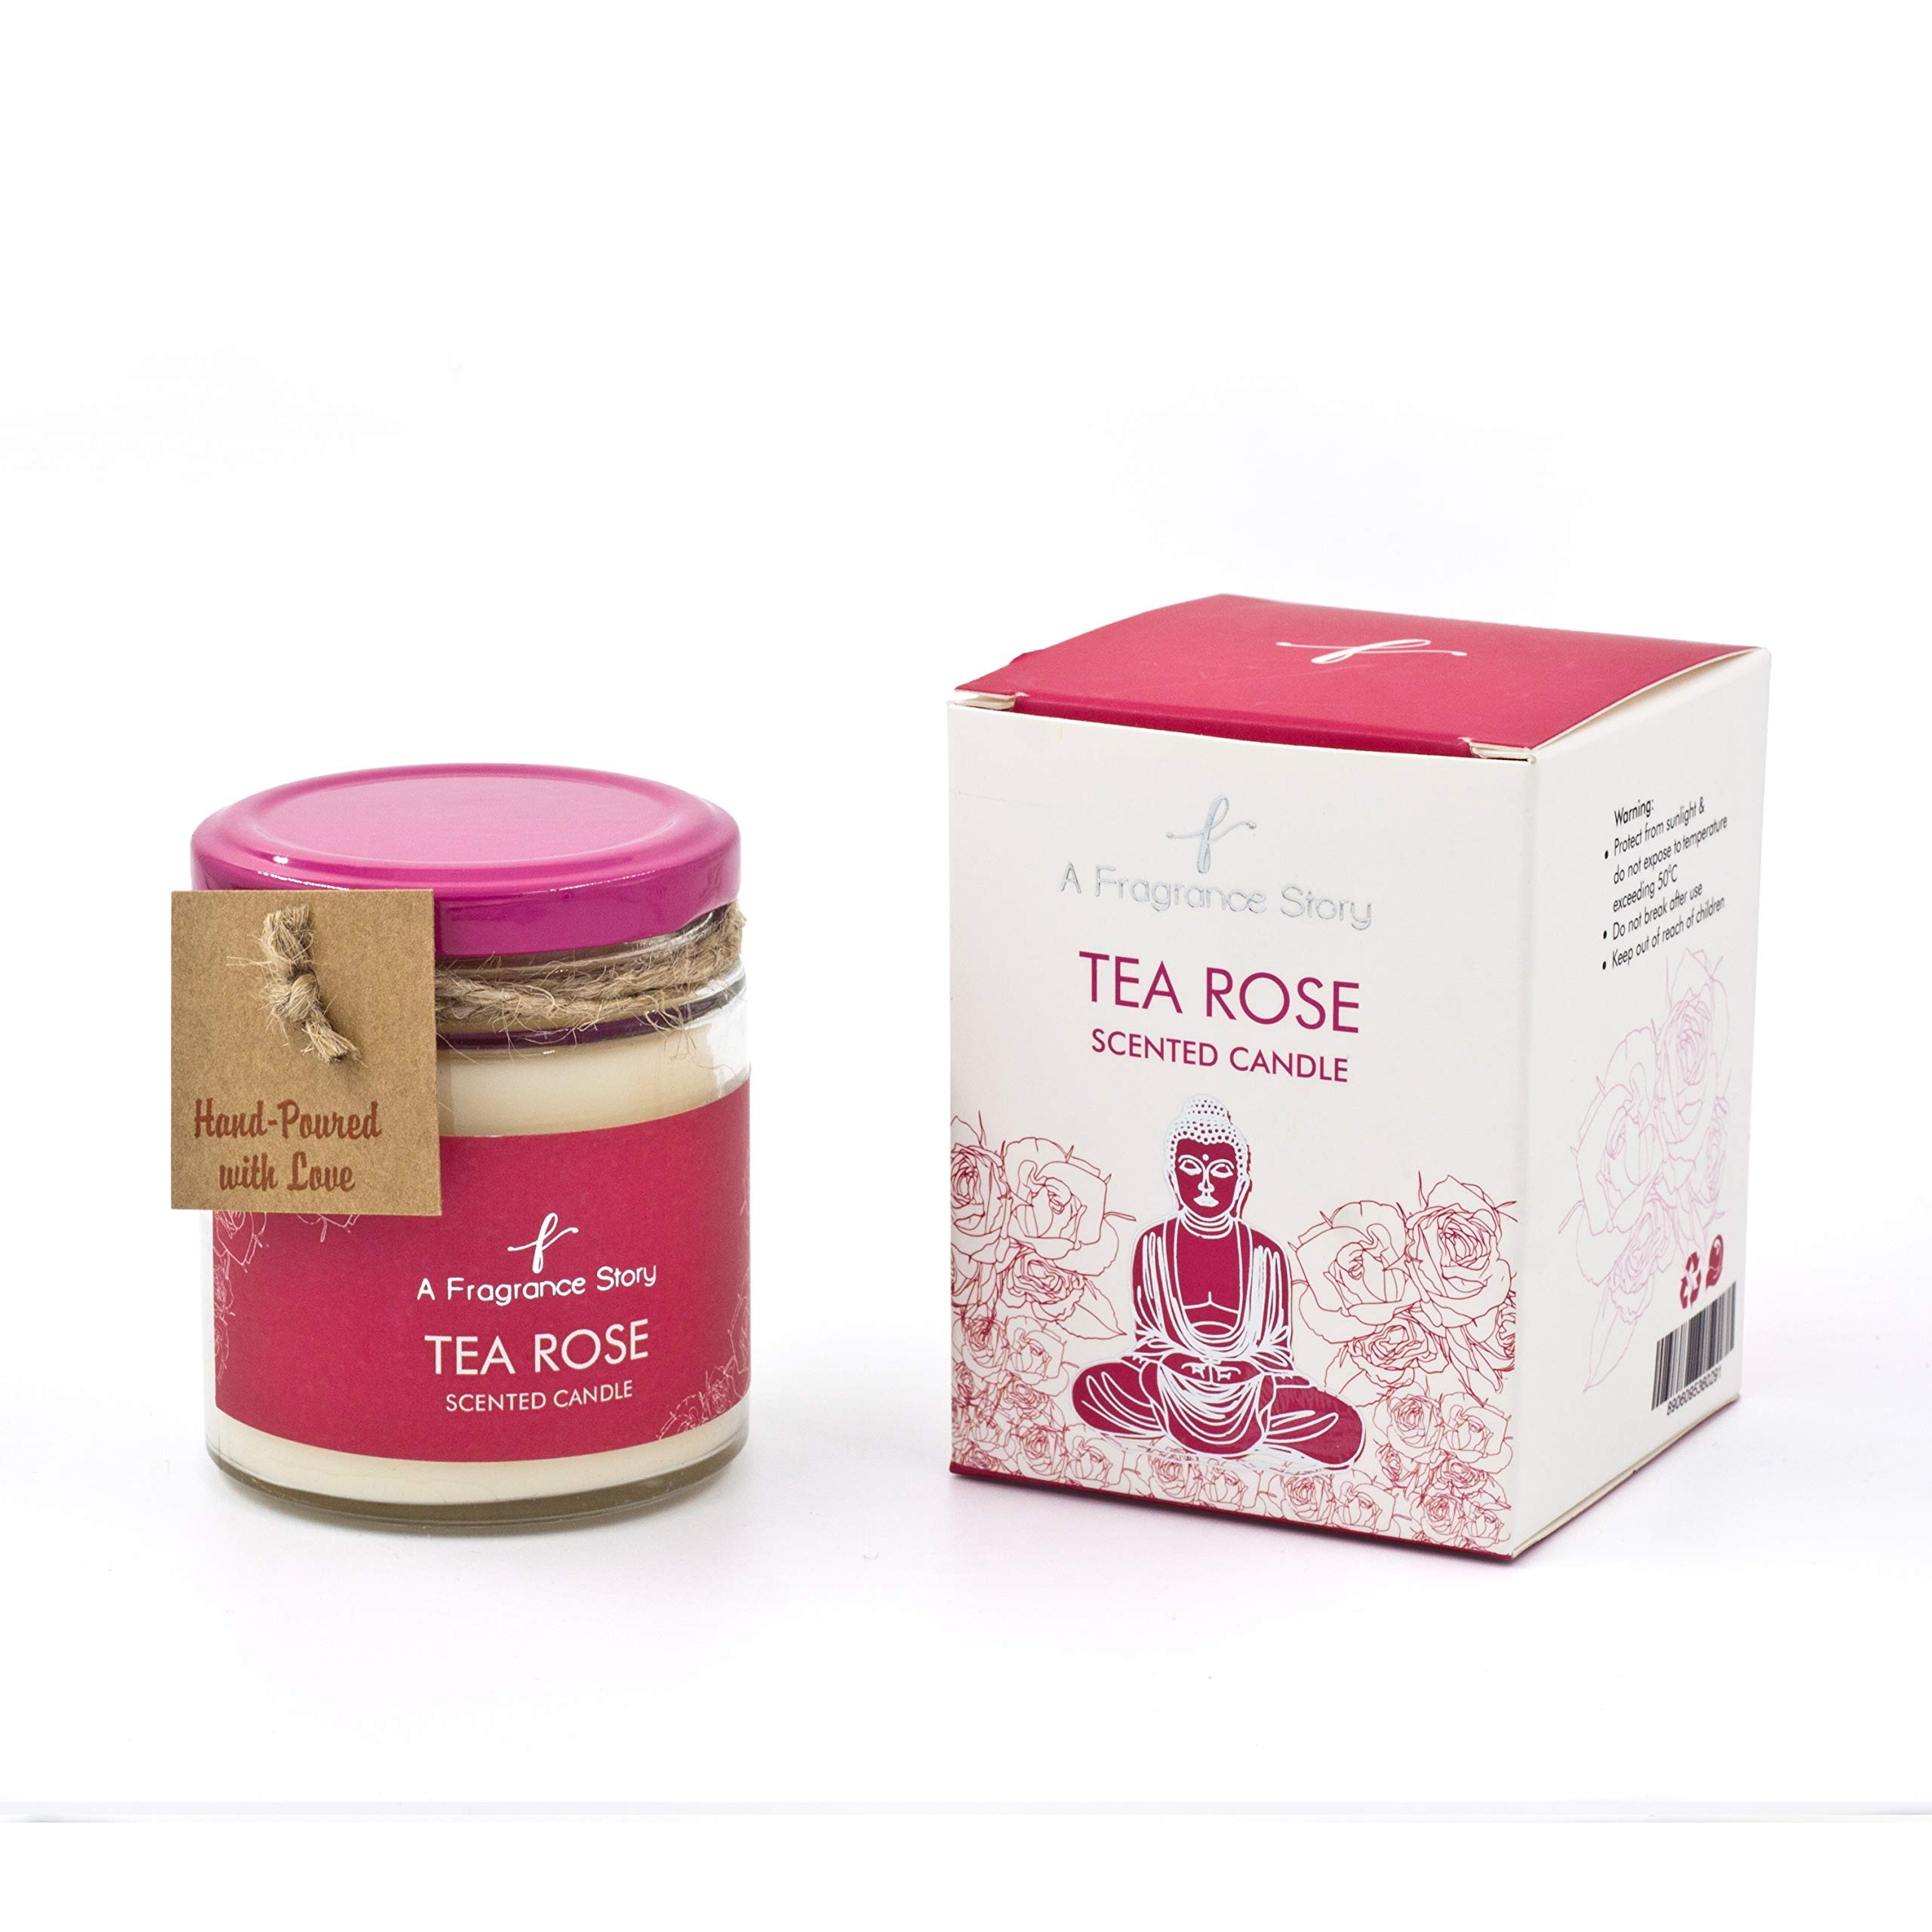 A Fragrance Story - Tea Rose Scented Candle, 100% pure beeswax, aromatic fragrance